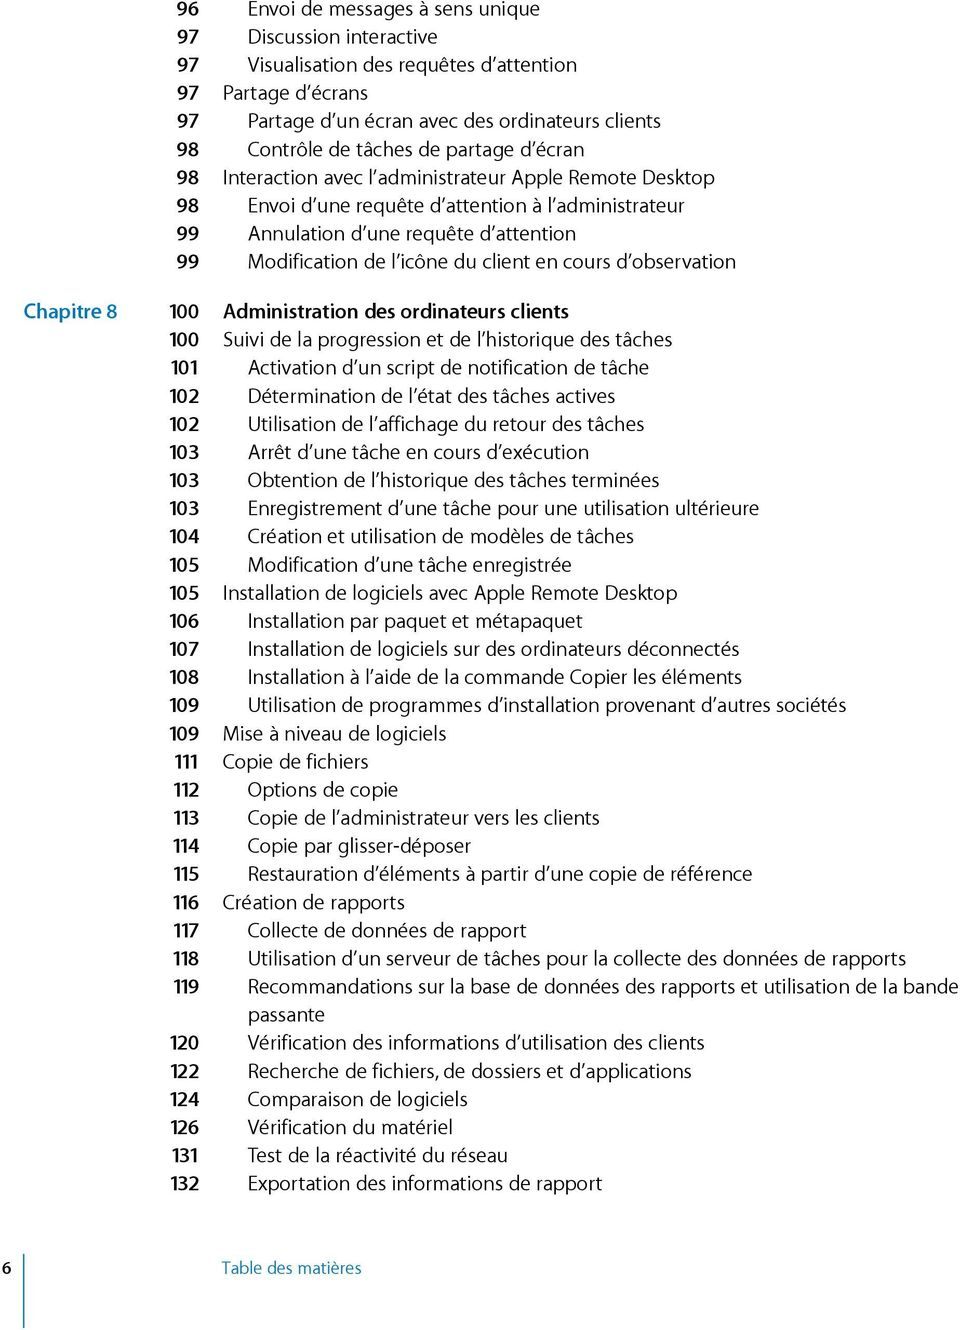 100 Administrationdesordinateursclients 100 Suividelaprogressionetdel historiquedestâches 101 Activationd unscriptdenotificationdetâche 102 Déterminationdel étatdestâchesactives 102 Utilisationdel